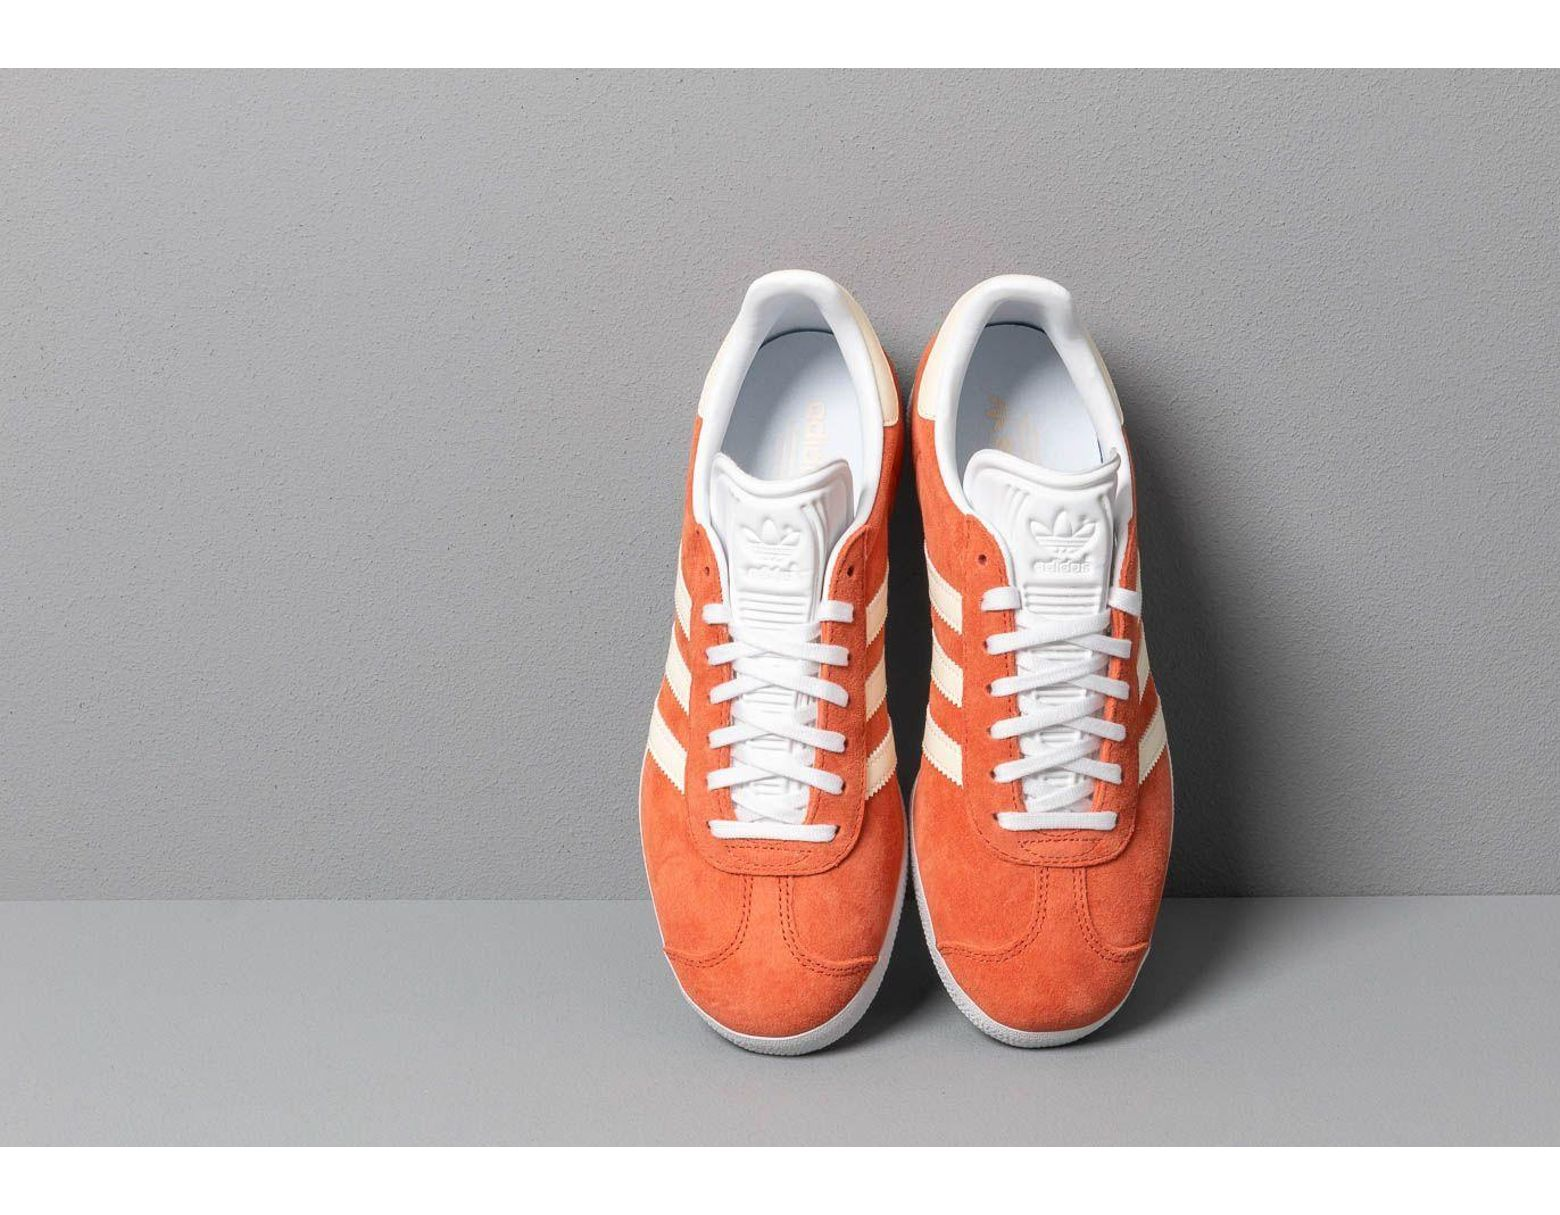 eacdeb28b31877 adidas-originals-Red-Adidas-Gazelle-W-Raw-Amber-Ecru-Tint-Ftw-White.jpeg